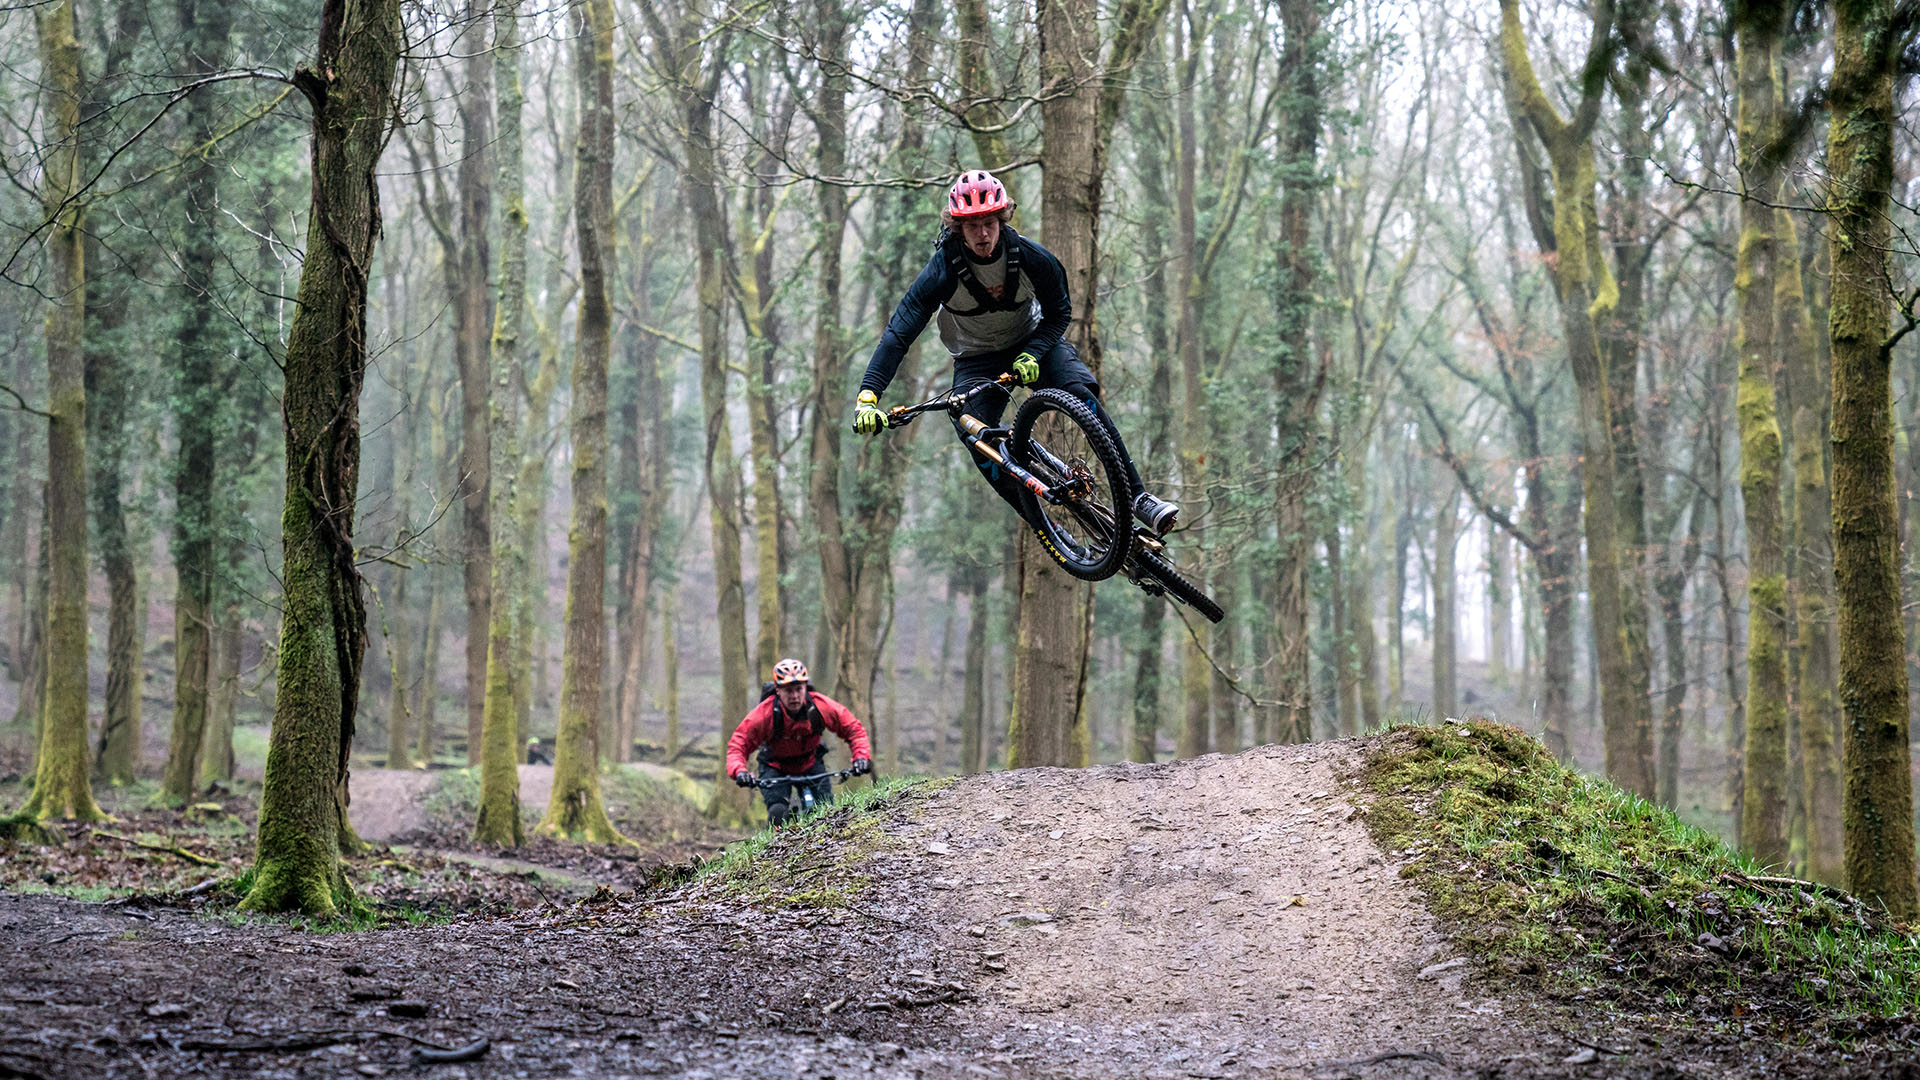 +3 MTB coach Jay Williamson getting booking some air miles during an event in the Forest of Dean